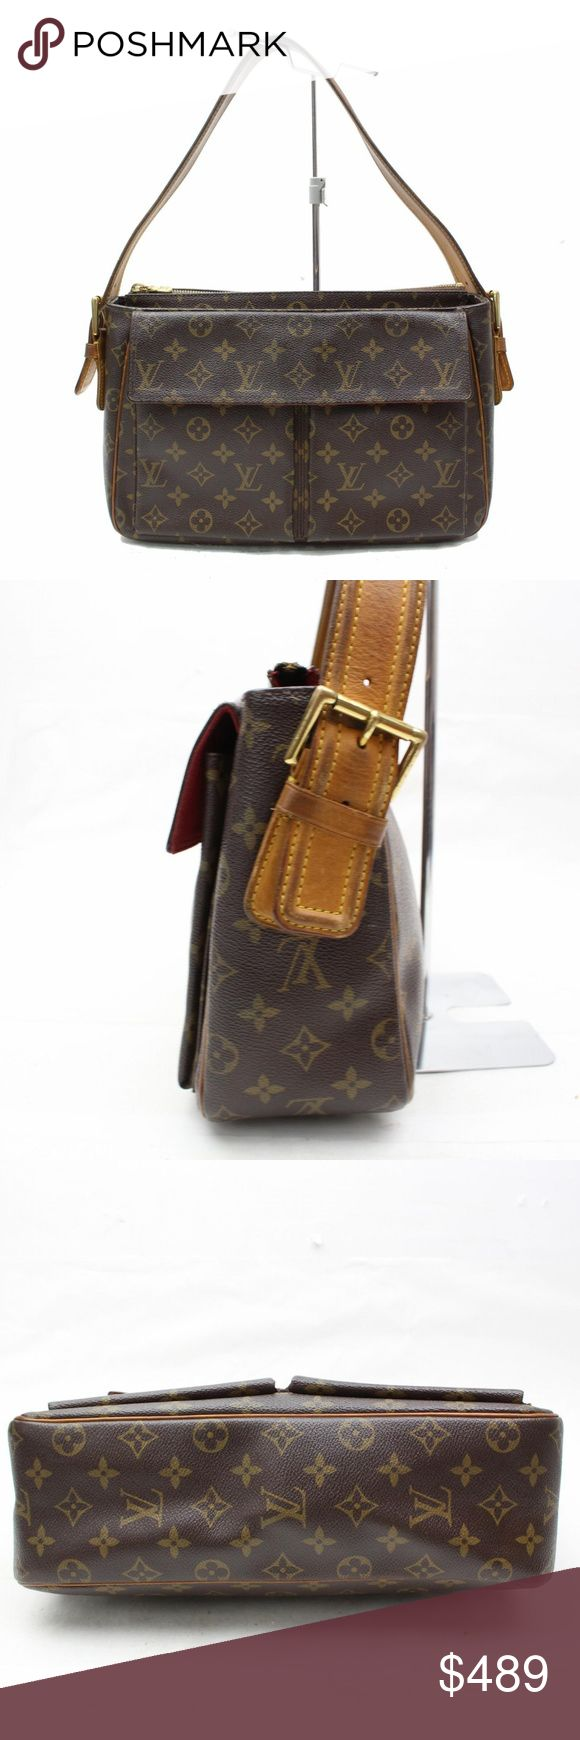 Louis Vuitton Viva Cite GM Shoulder Bag 10750 Outside: Minor rubs and stains on the leather parts.   Shoulder: Minor rubs on the edge of shoulder strap. Noticeable spots on a part of shoulder strap.  Bottom: Minor stains on the leather of the bottom parts.  Inside: Noticeable rubs and stains on the edge of the upper parts. Minor stains partially.  Zipper works properly.  Metal: Minor tarnish on the almost of all metal parts. Minor storage odor.  H: 8.26 W: 12.2 D: 3.93 Shoulder: 22.44 - 25.2…